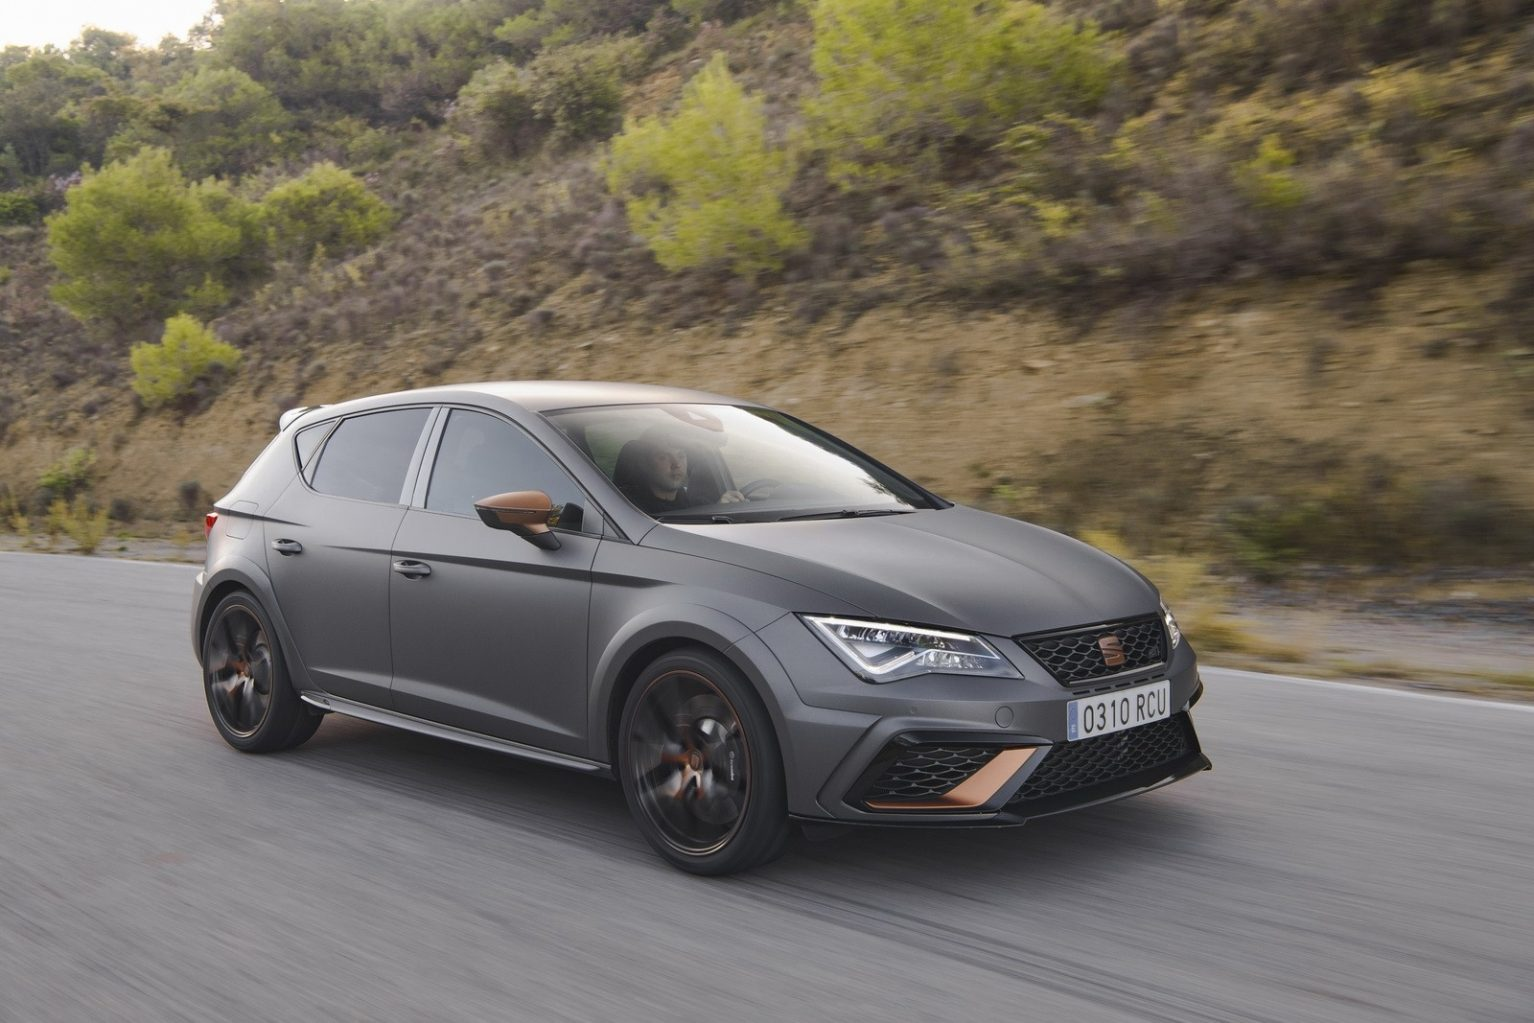 2019 SEAT Leon New Design Wallpaper Autoweikcom 1534x1023